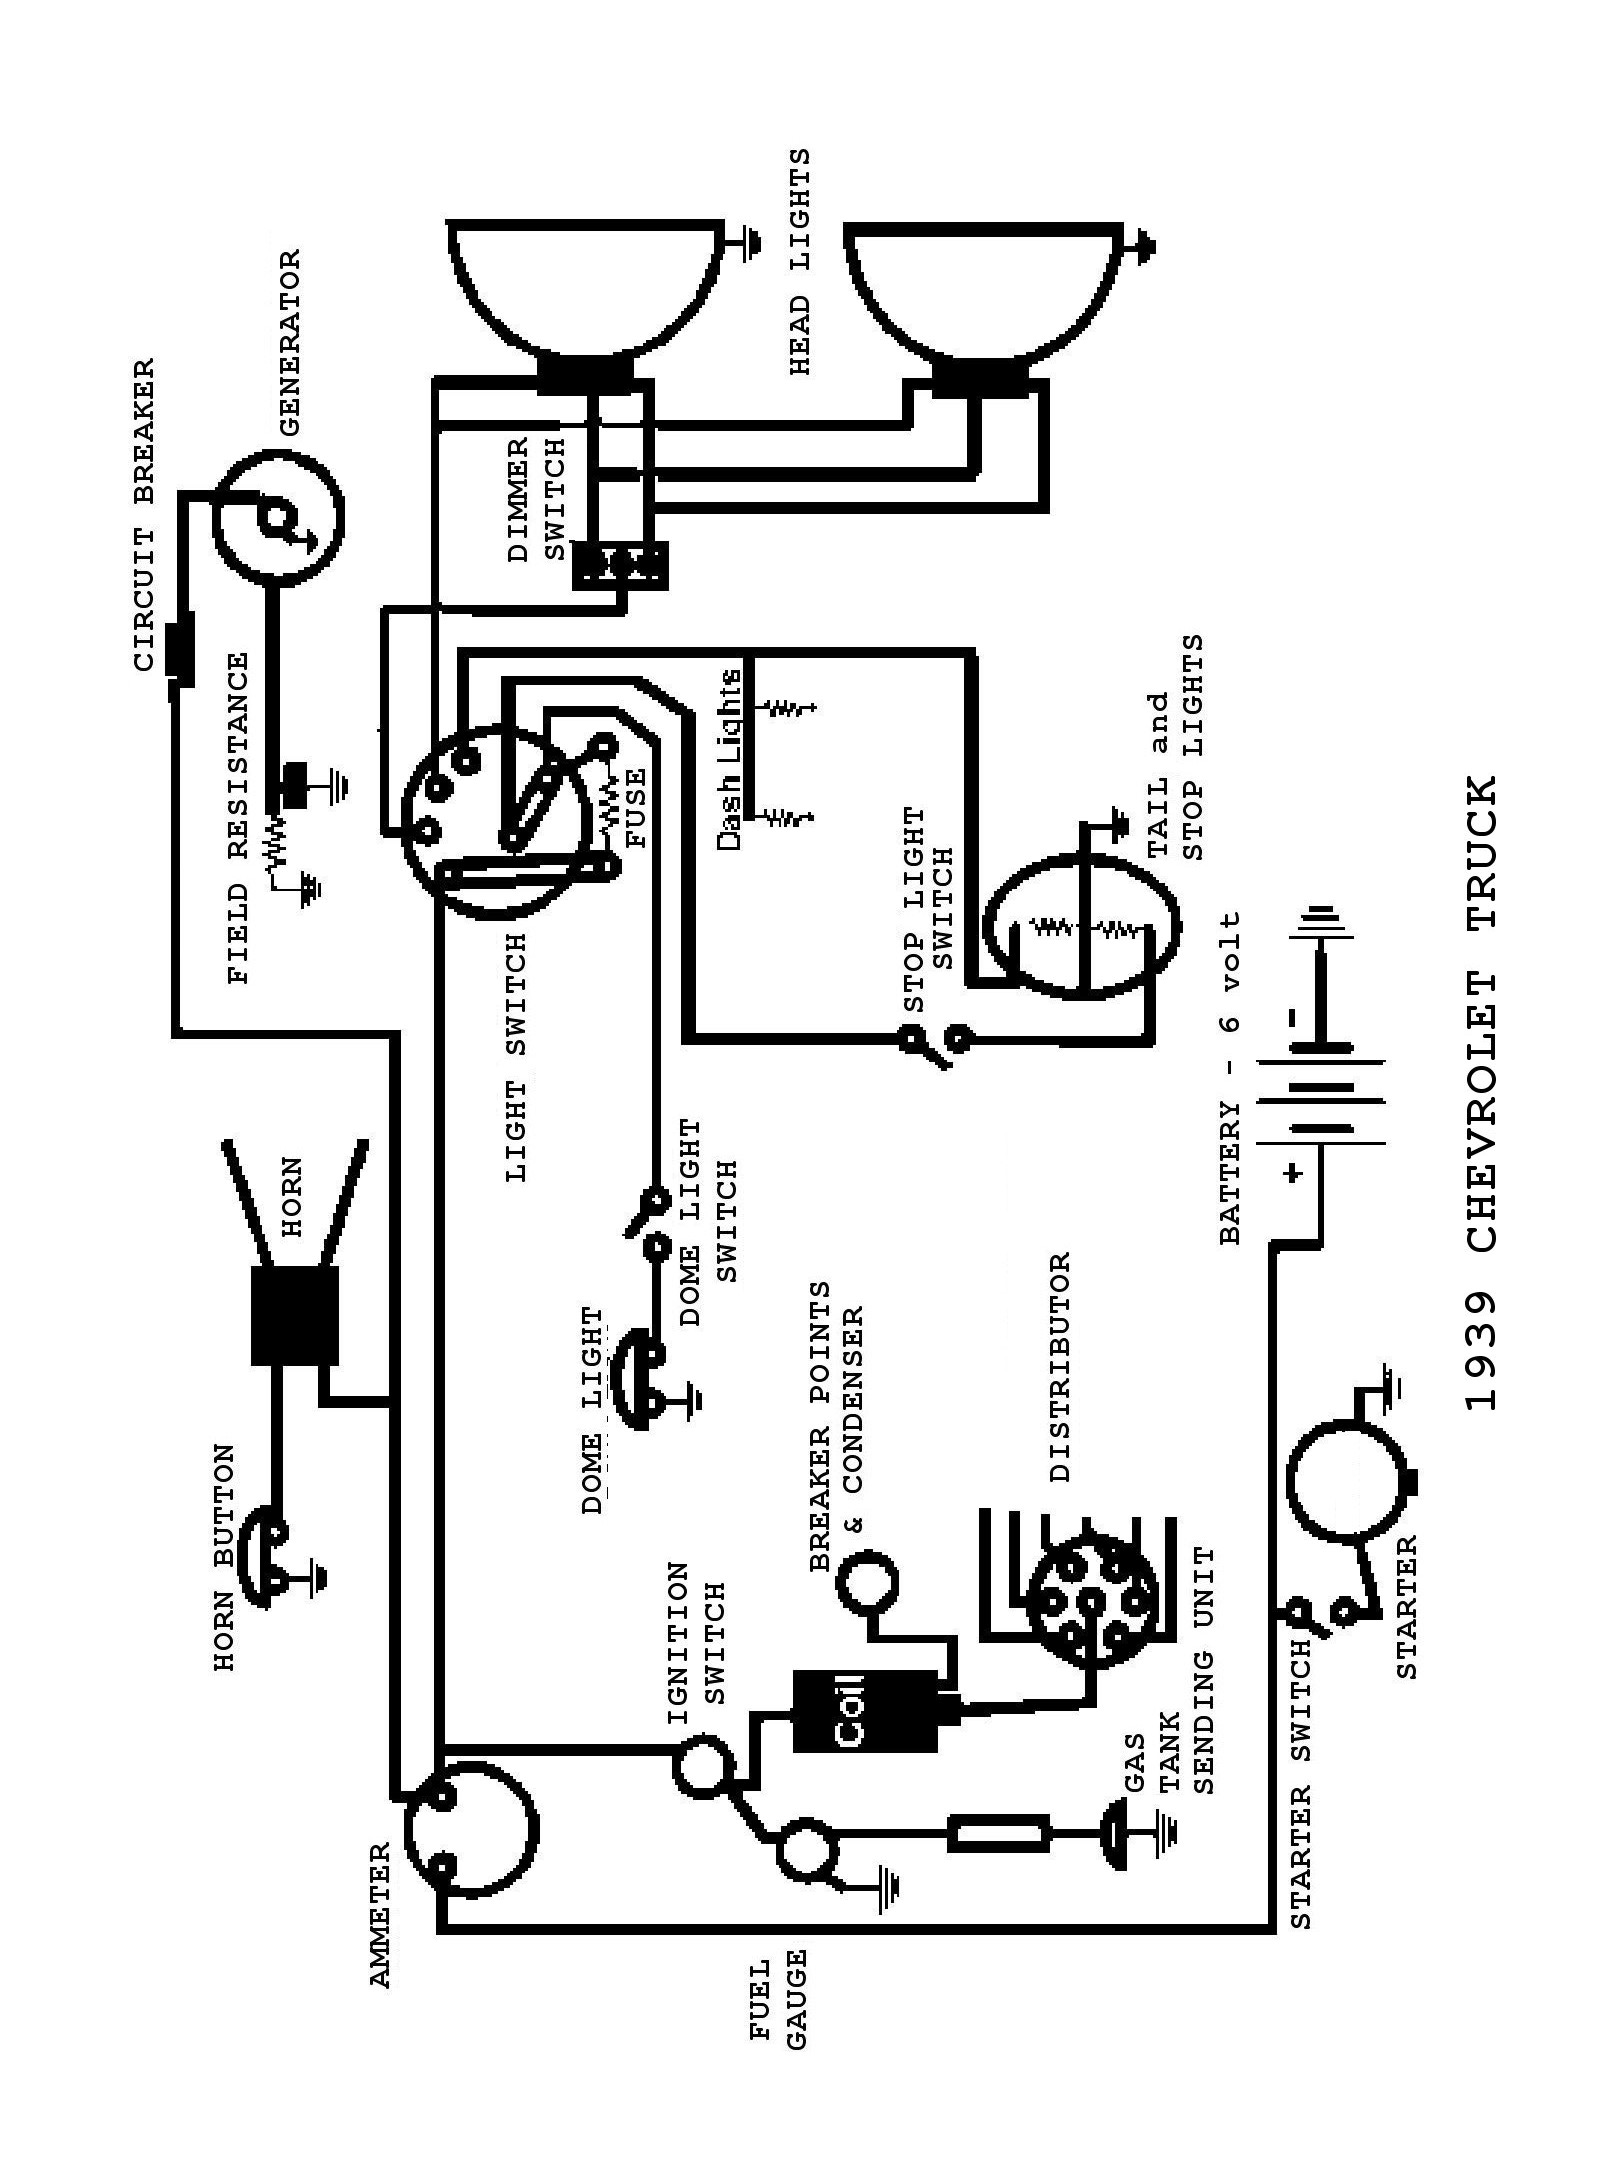 Wrg Ih Super A Wiring Diagram